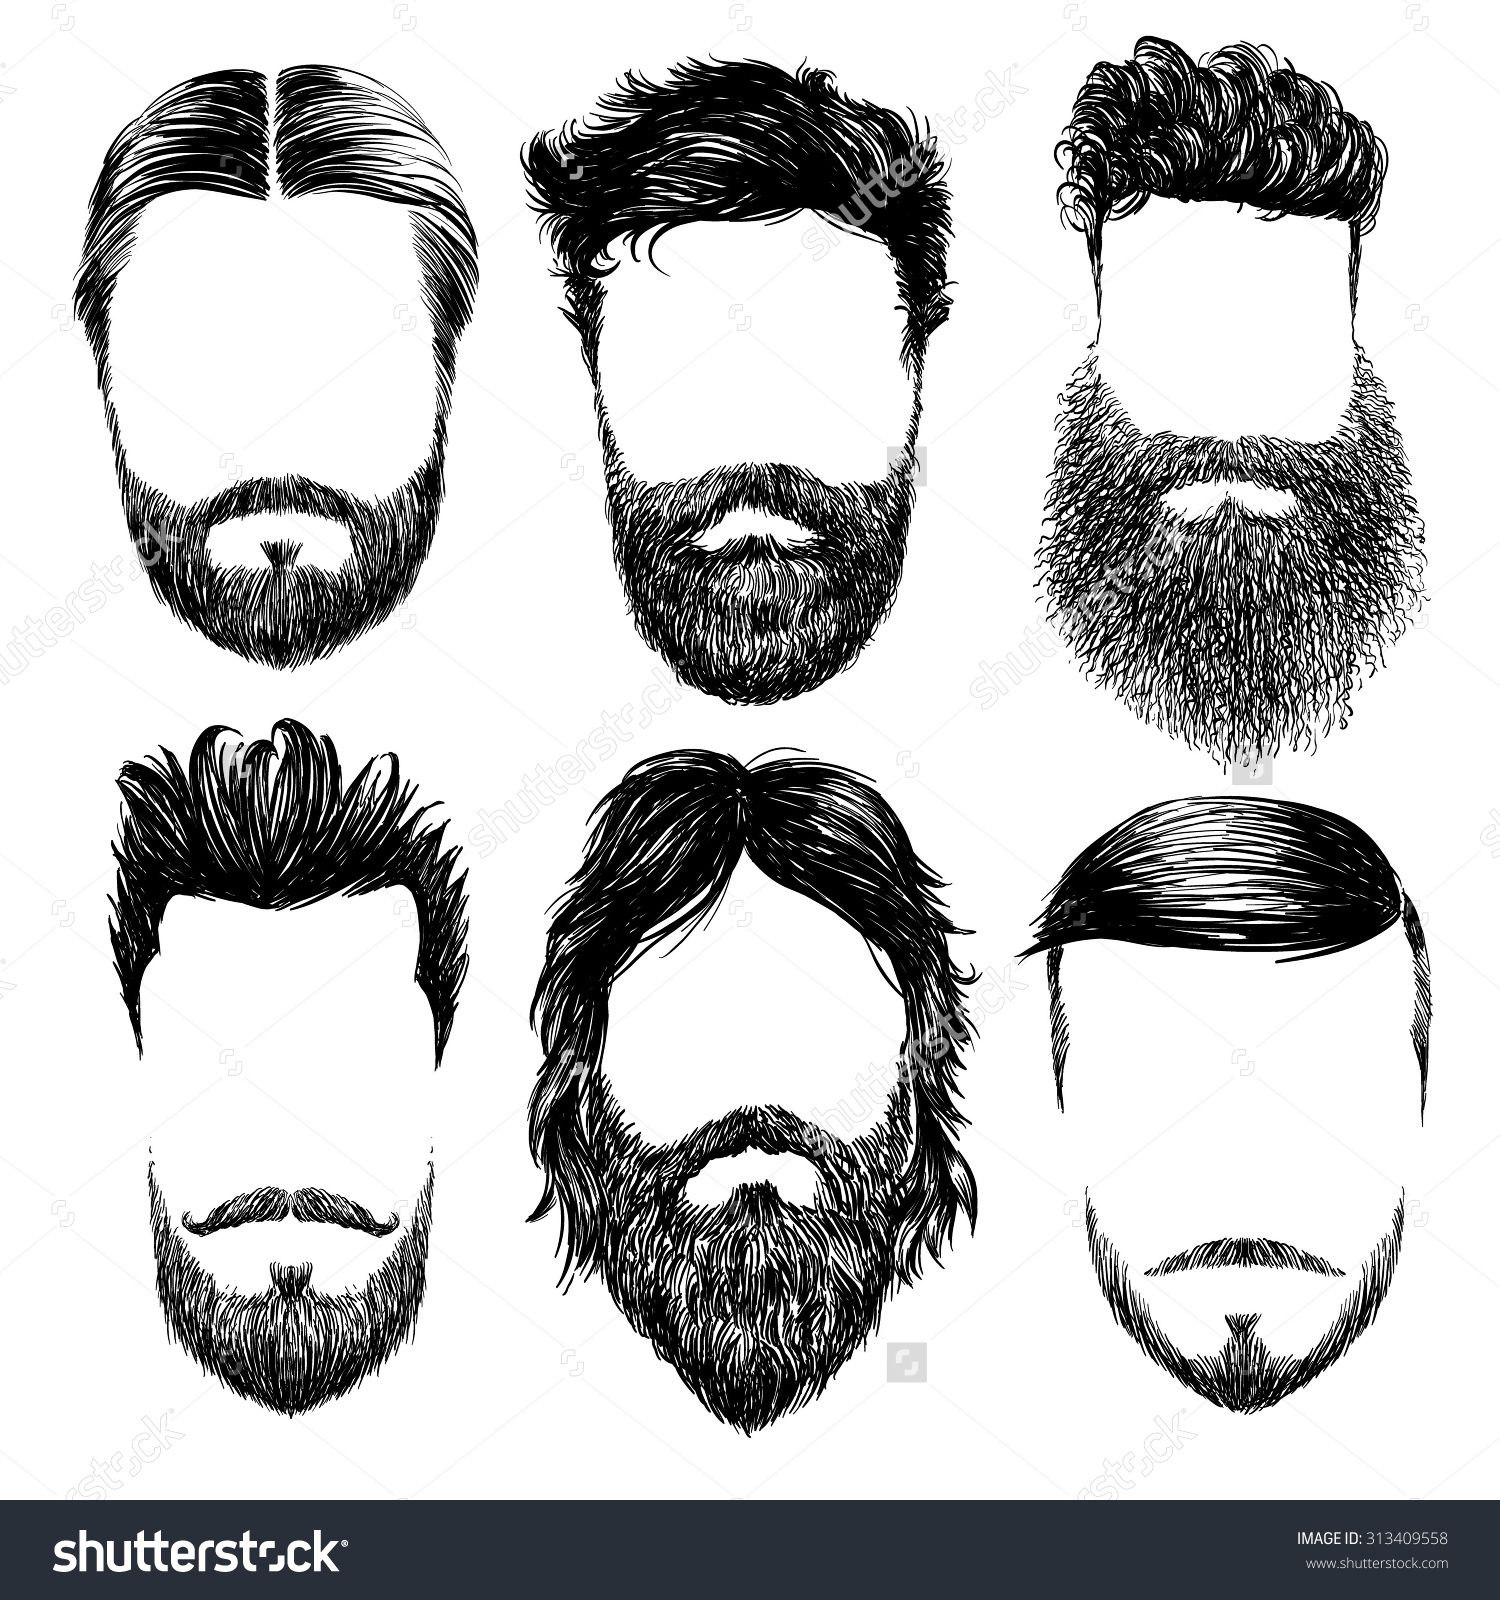 Hipster fashion man hair and beards Hand drawn vector illustration